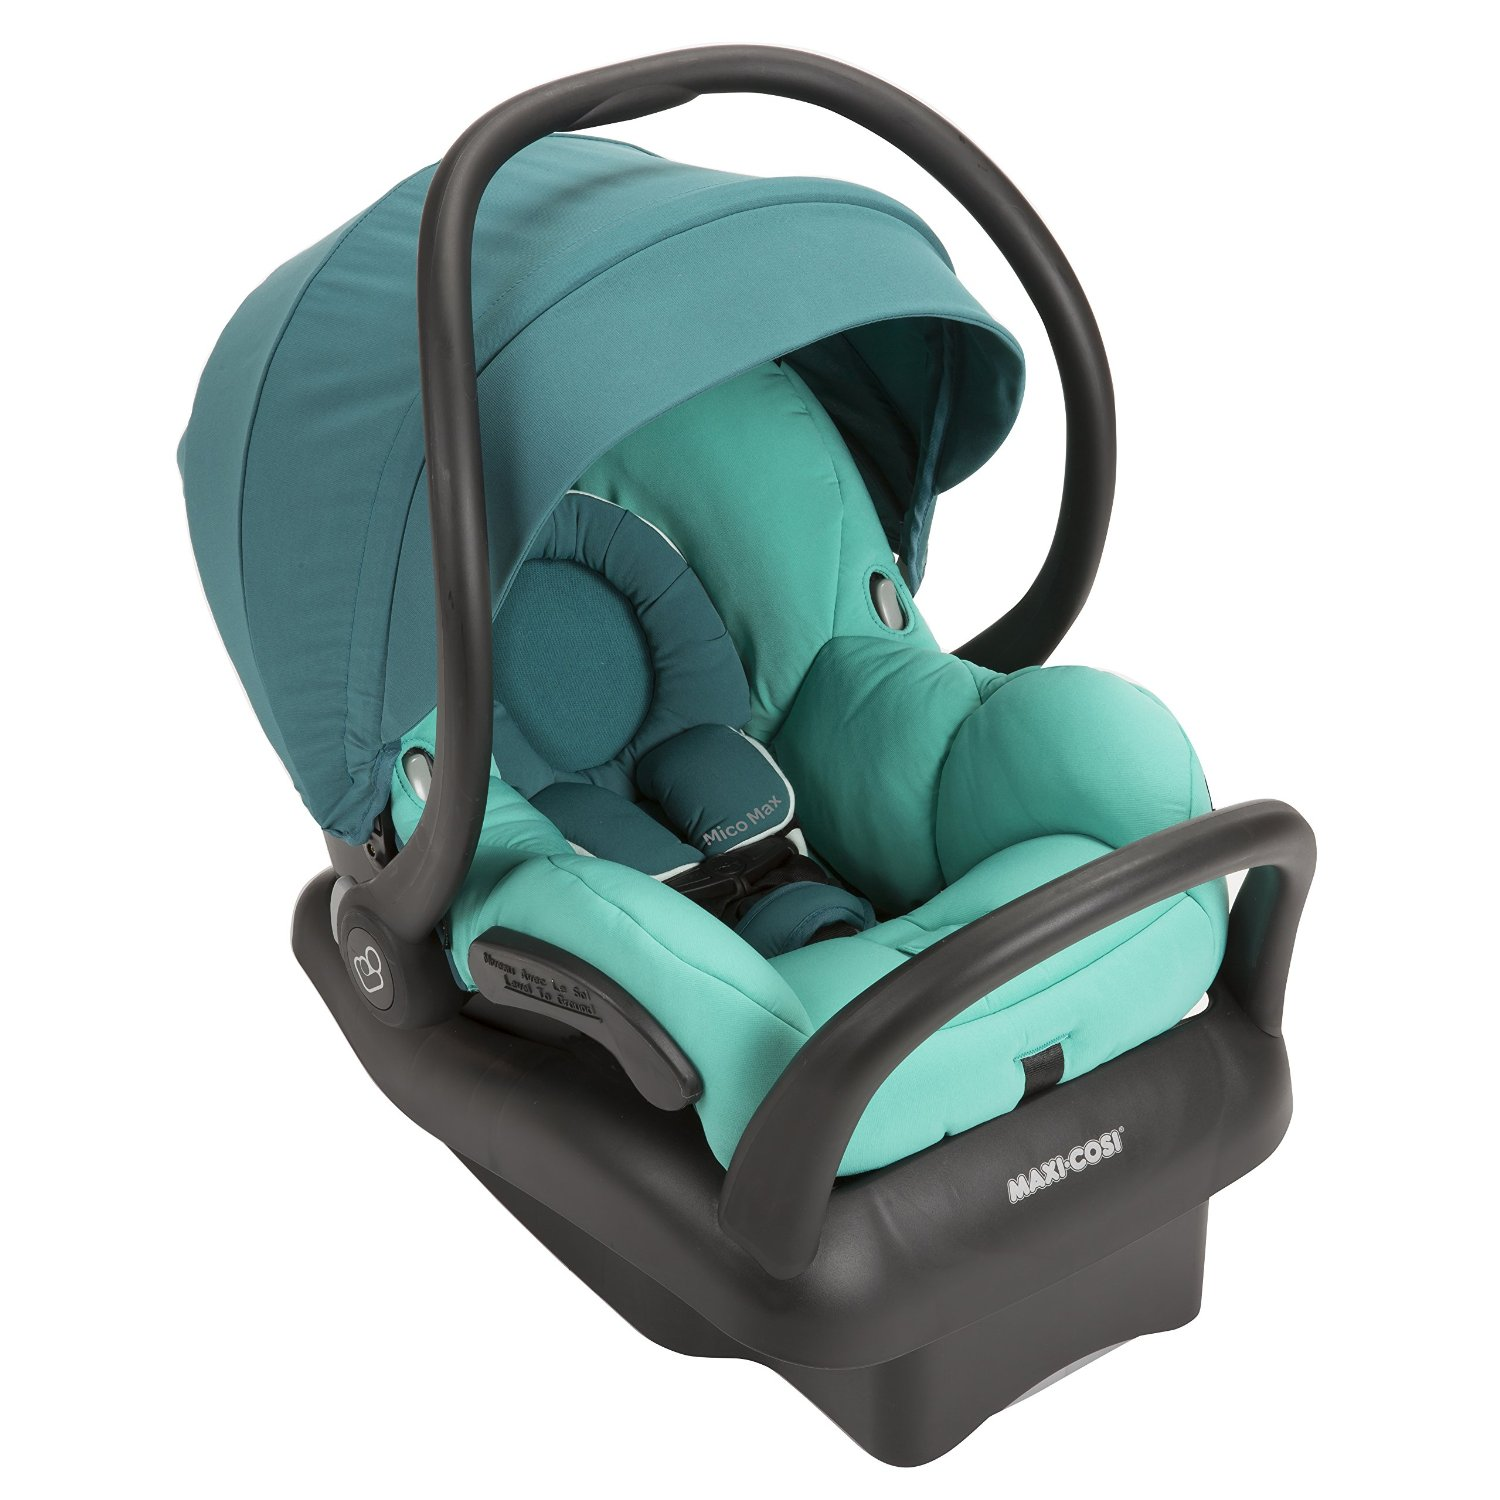 Maxi Cosi Car Seat Weight Limit